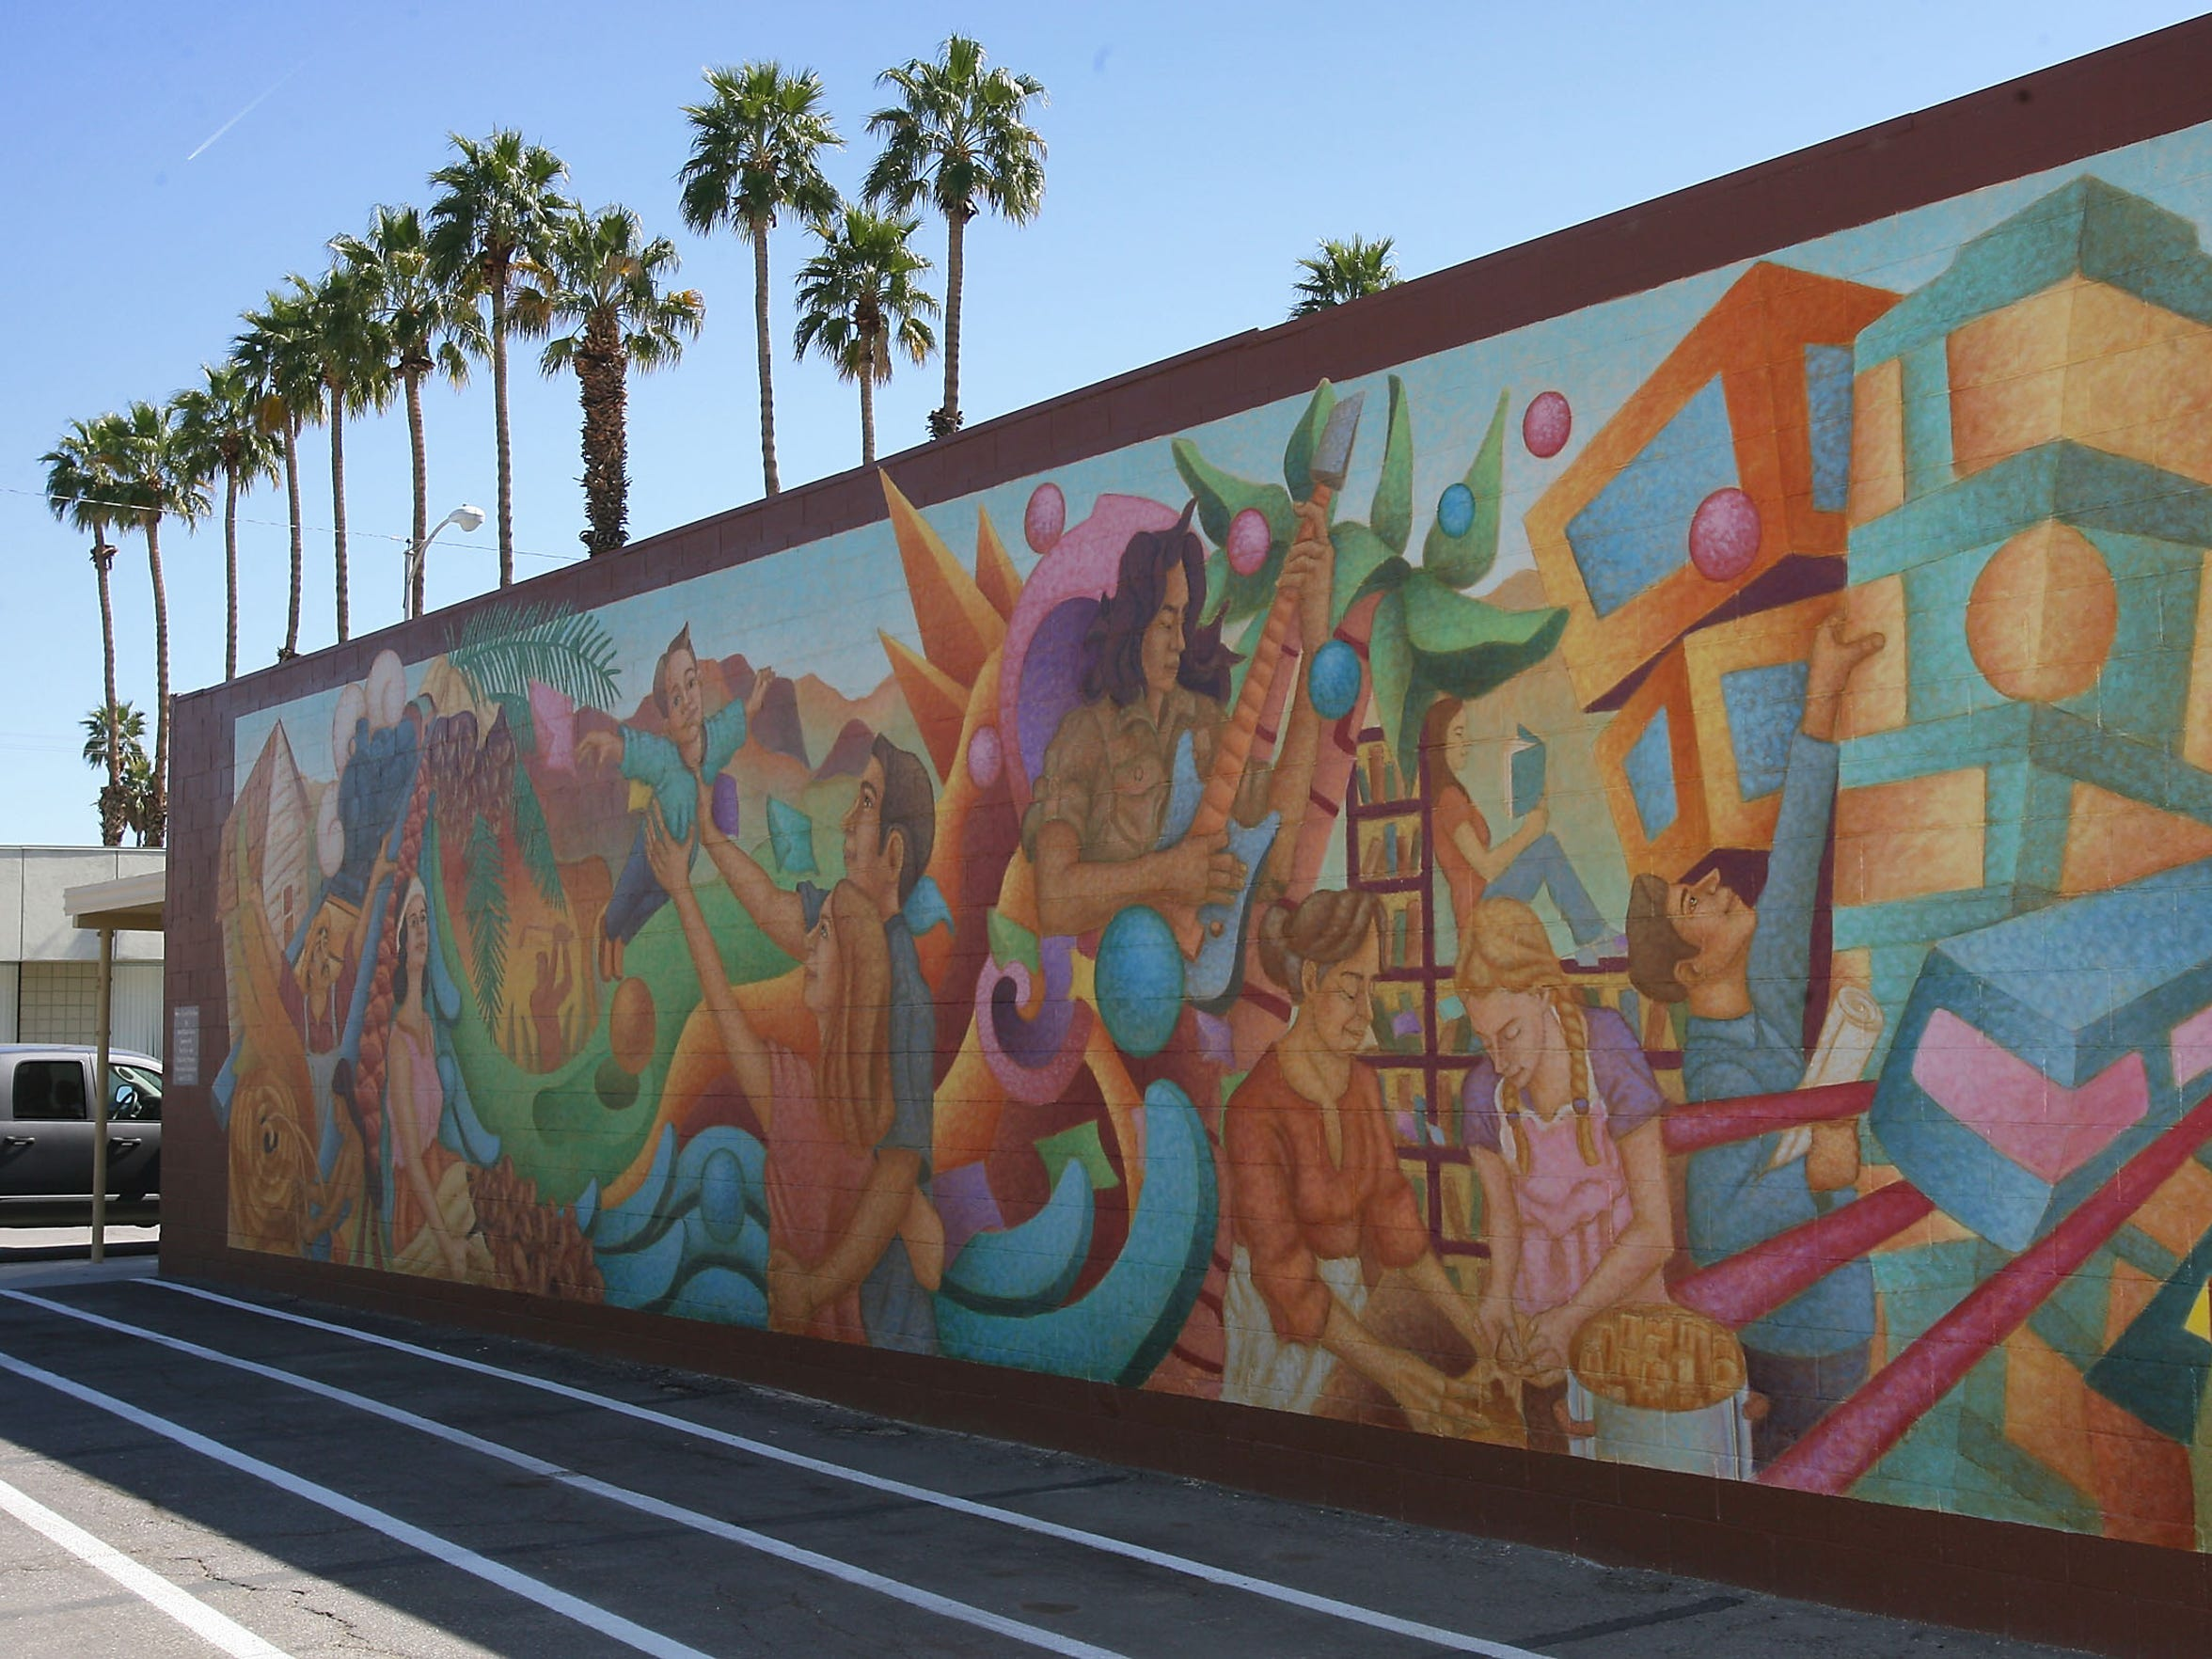 David Ocelotl Garcia, a sculptor and painter from Denver, painted the mural  on Smurr Street.